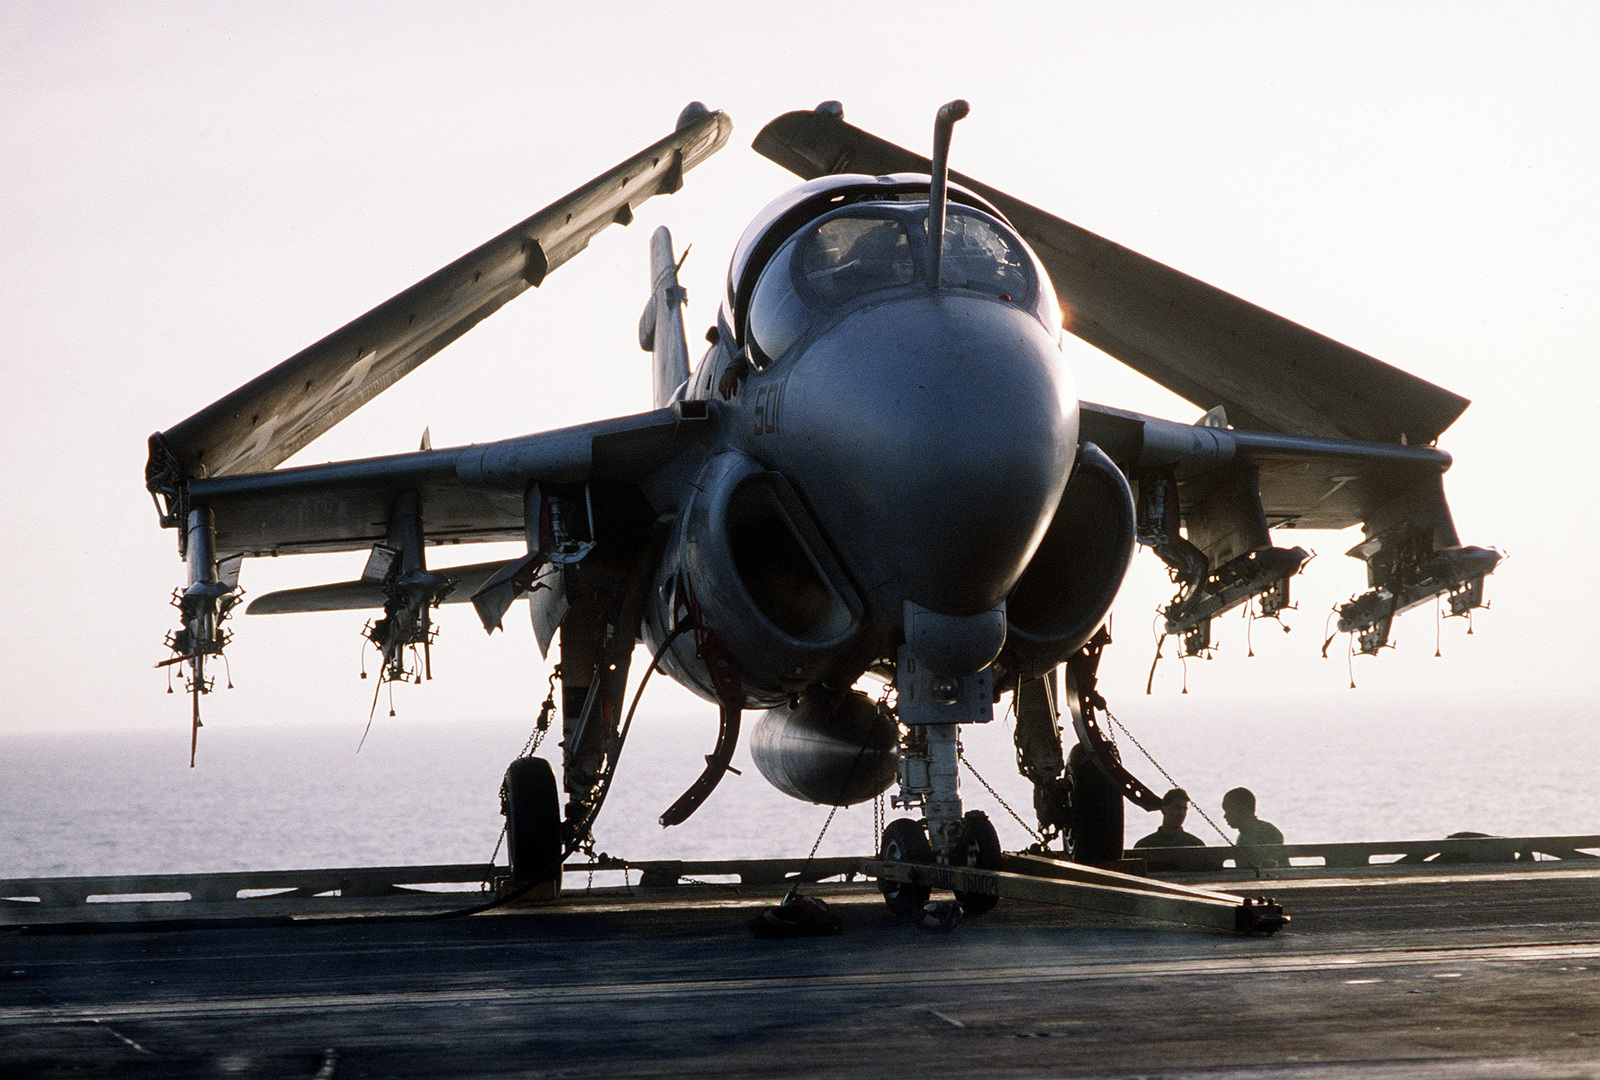 An Attack Squadron 35 (VA-35) A-6E Intruder aircraft sits on the flight deck of the aircraft carrier USS SARATOGA (CV-60) during Operation Desert Storm